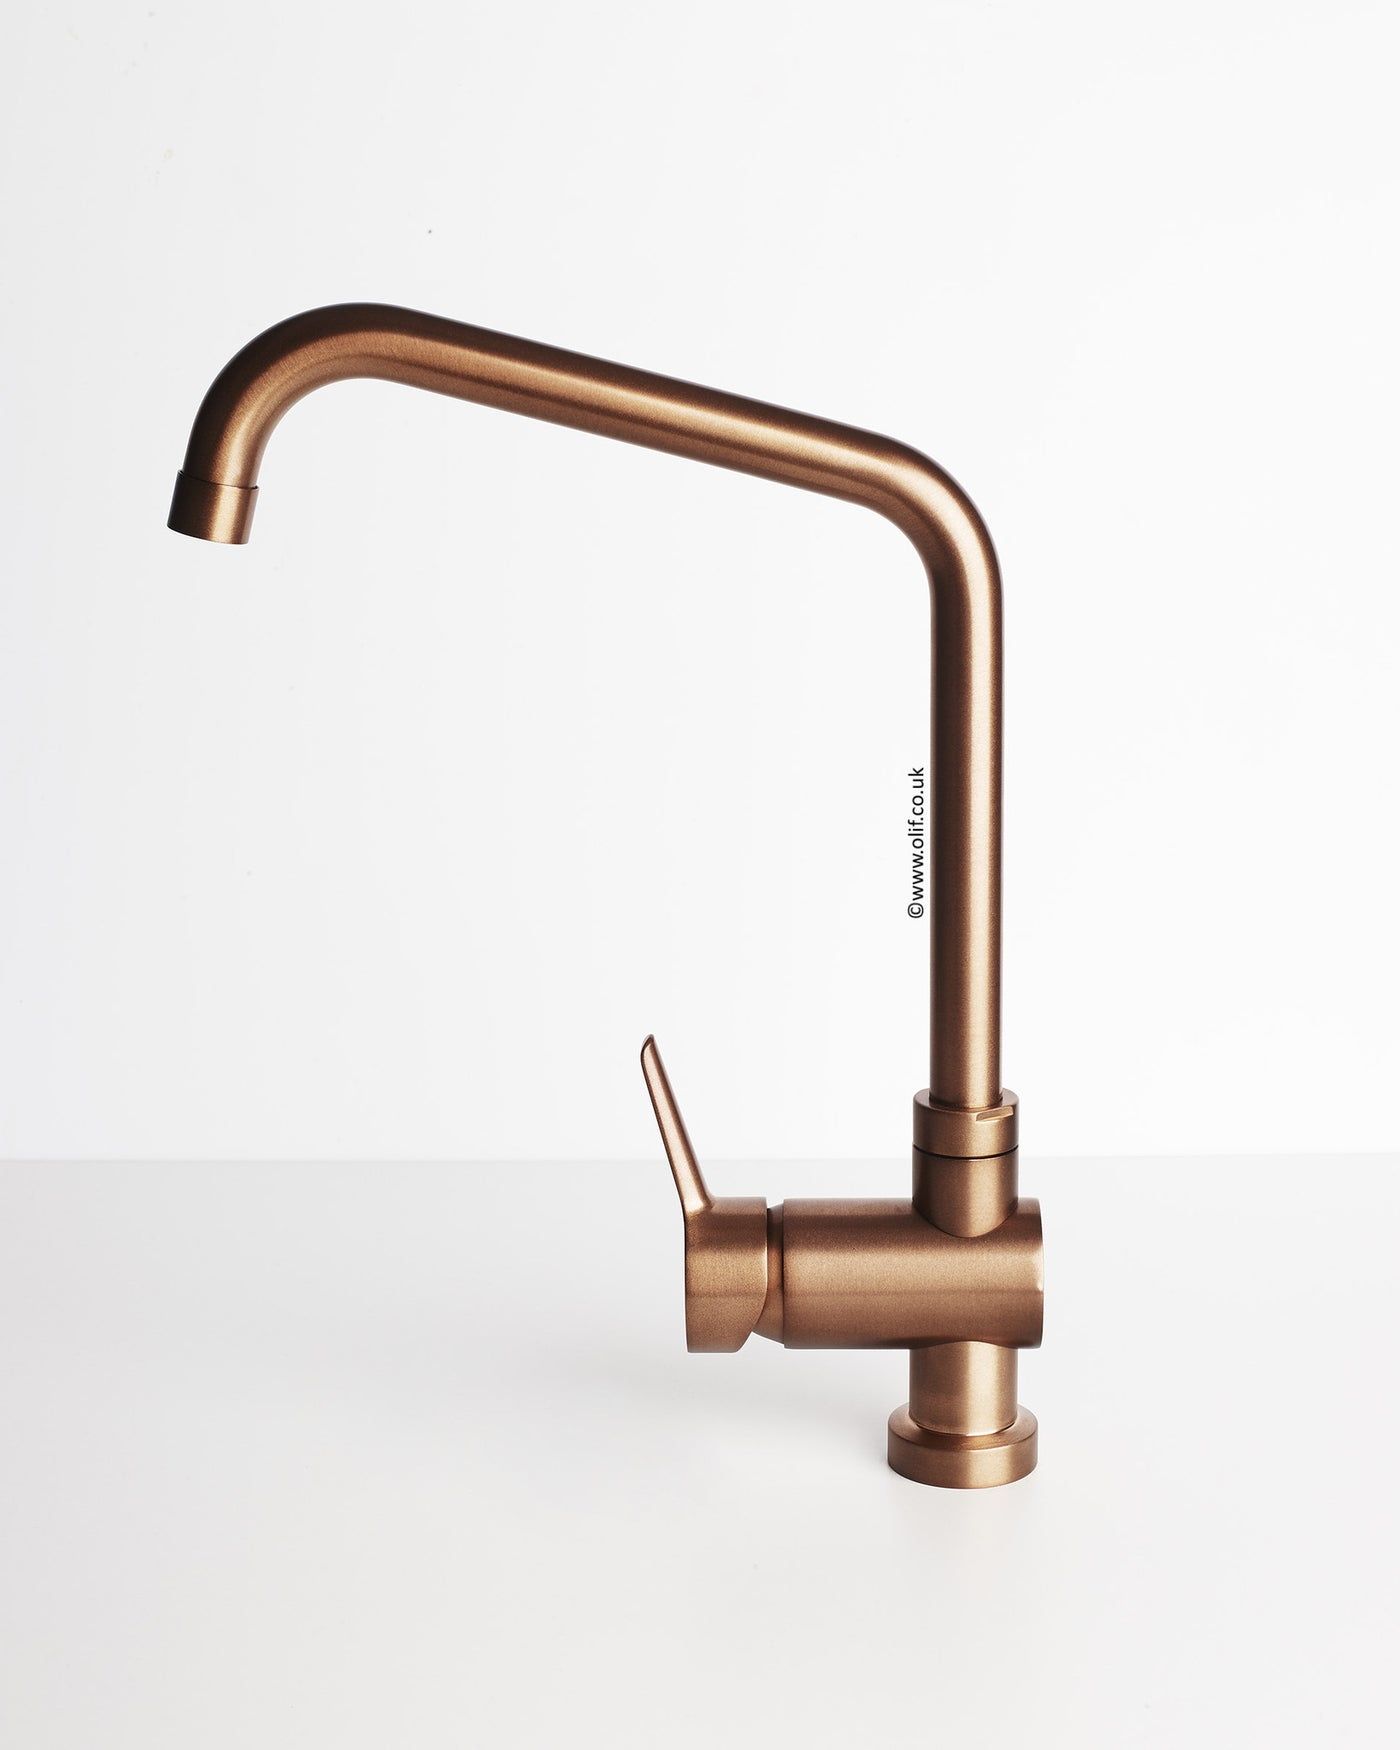 Brushed Copper kitchen mixer tap - Primo Copper by Olif